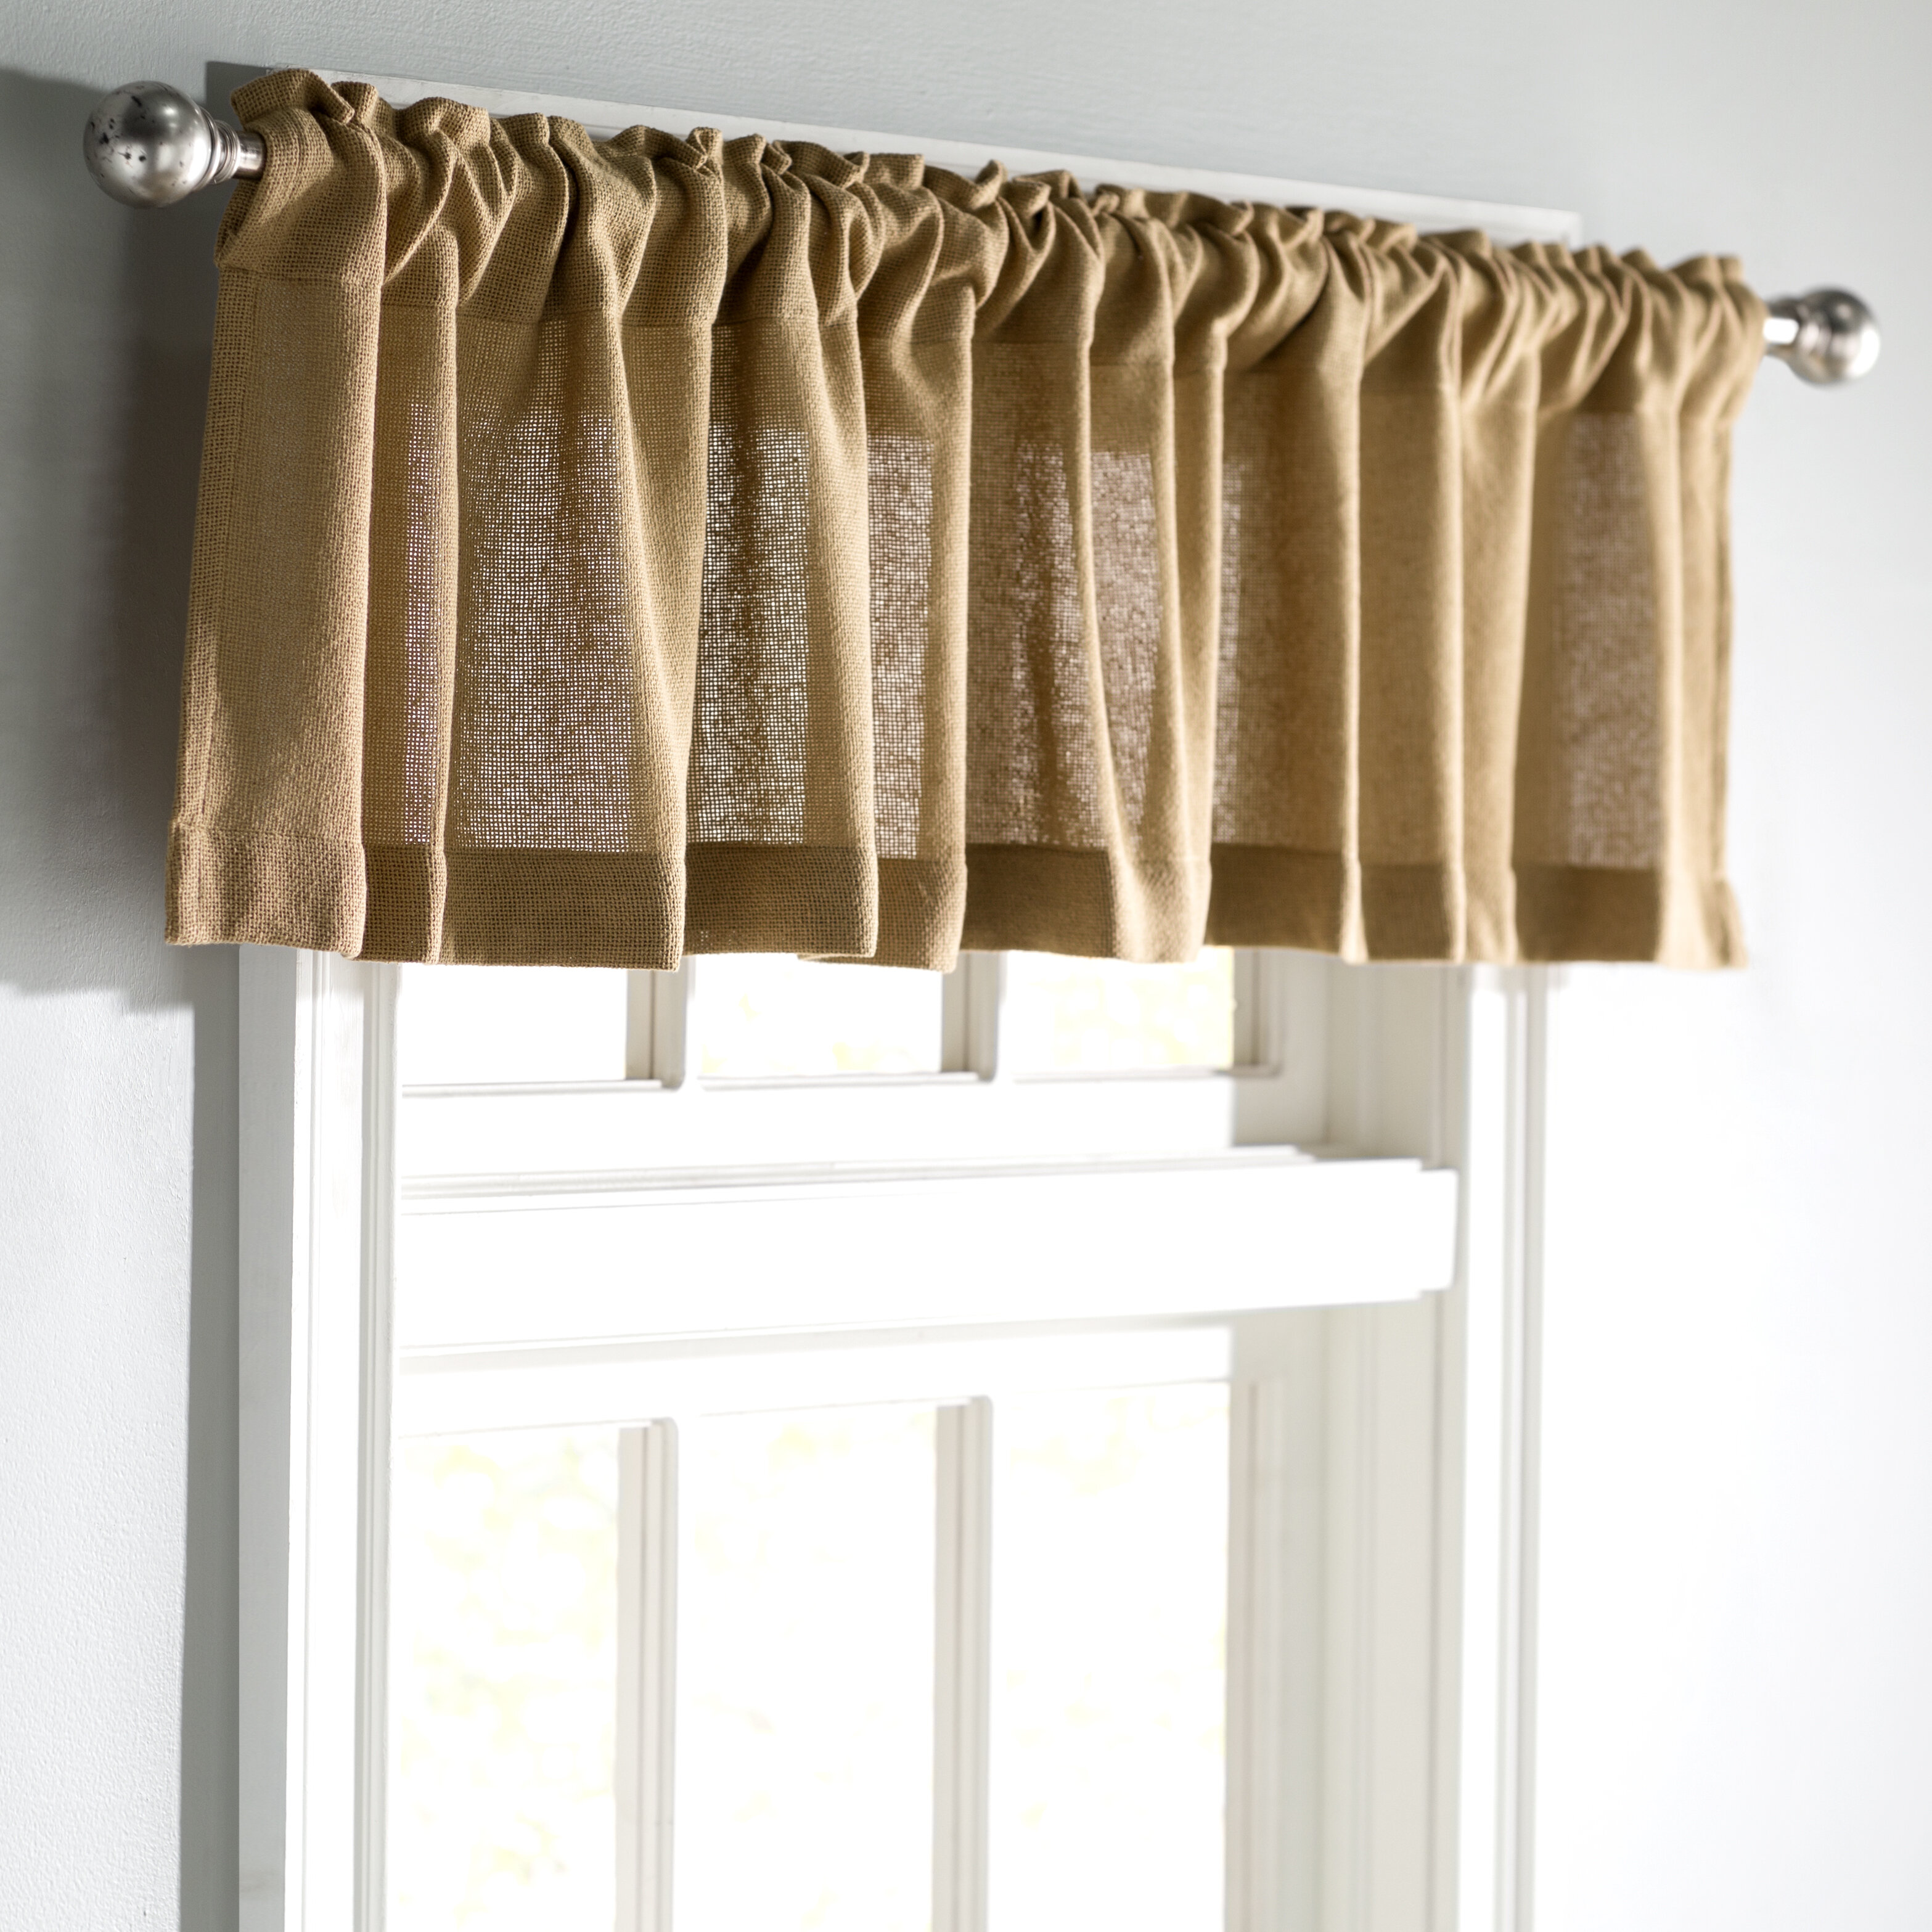 Strange Bathroom Valance Curtains Wayfair Download Free Architecture Designs Estepponolmadebymaigaardcom